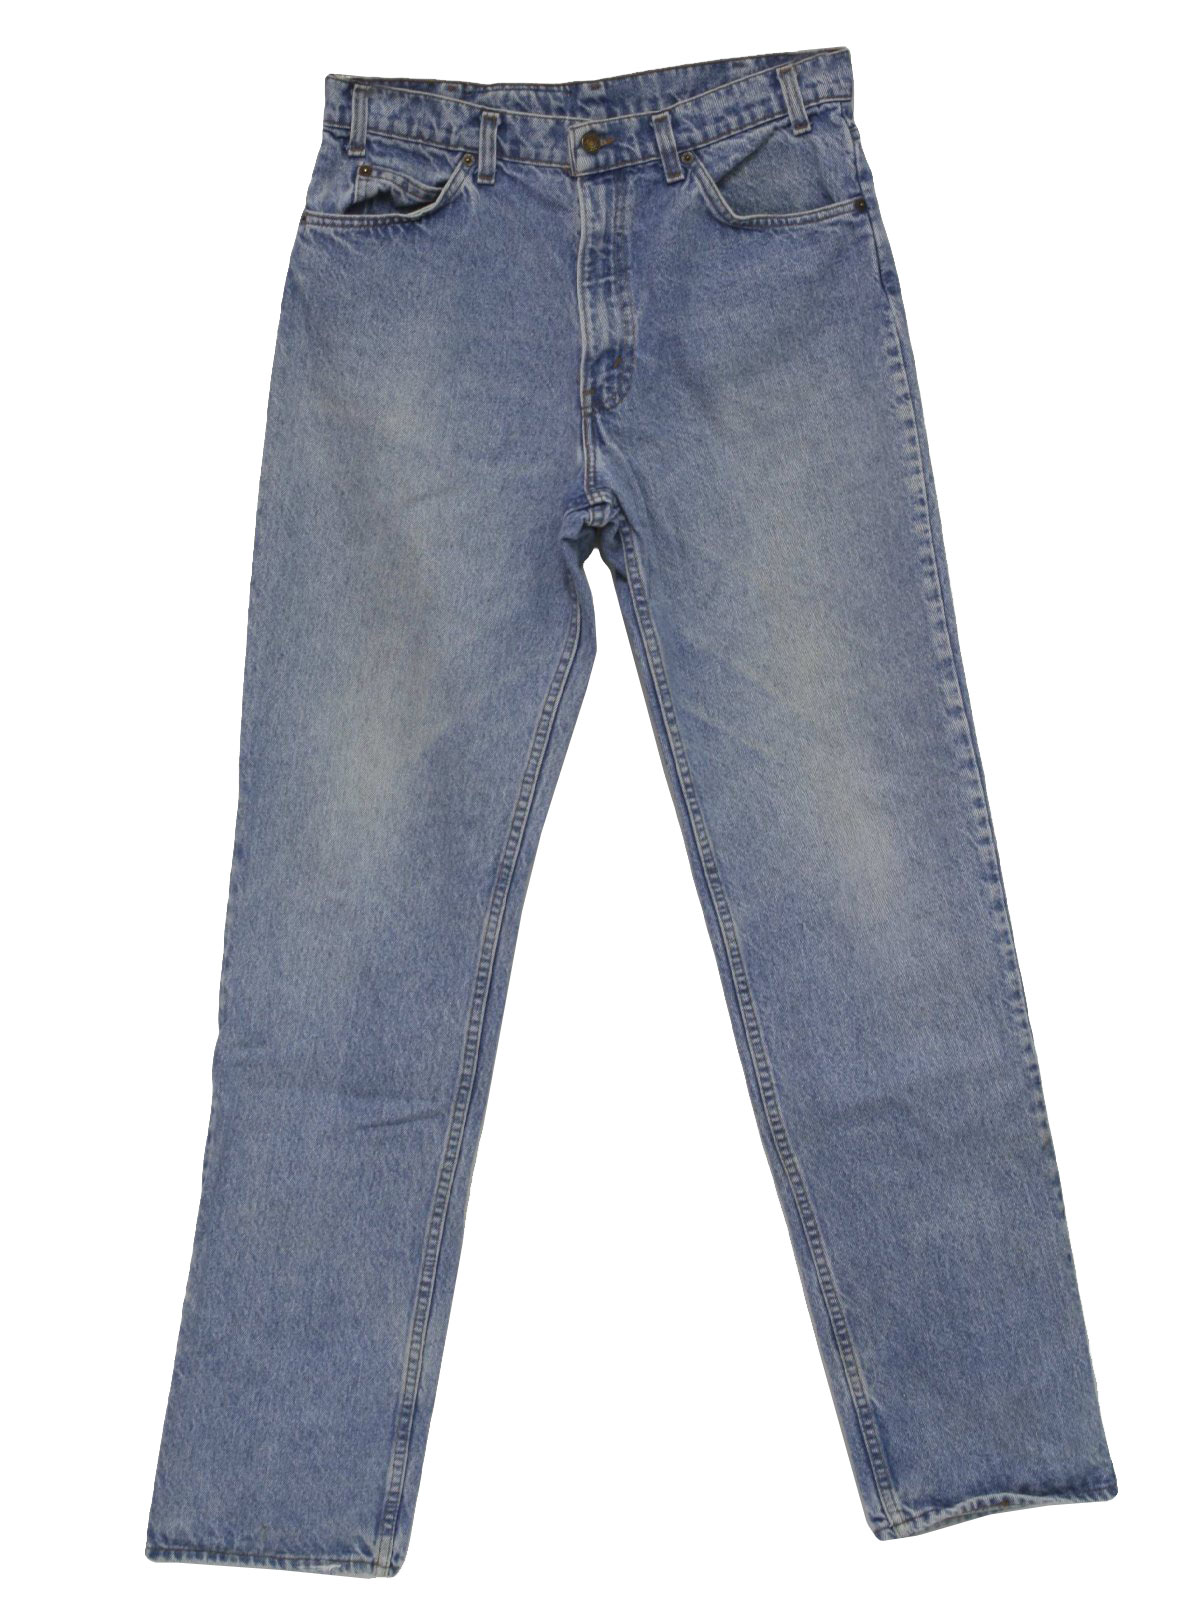 71a83eb704e 1990's Retro Pants: 90s -Levis 540- Mens faded light blue denim ...